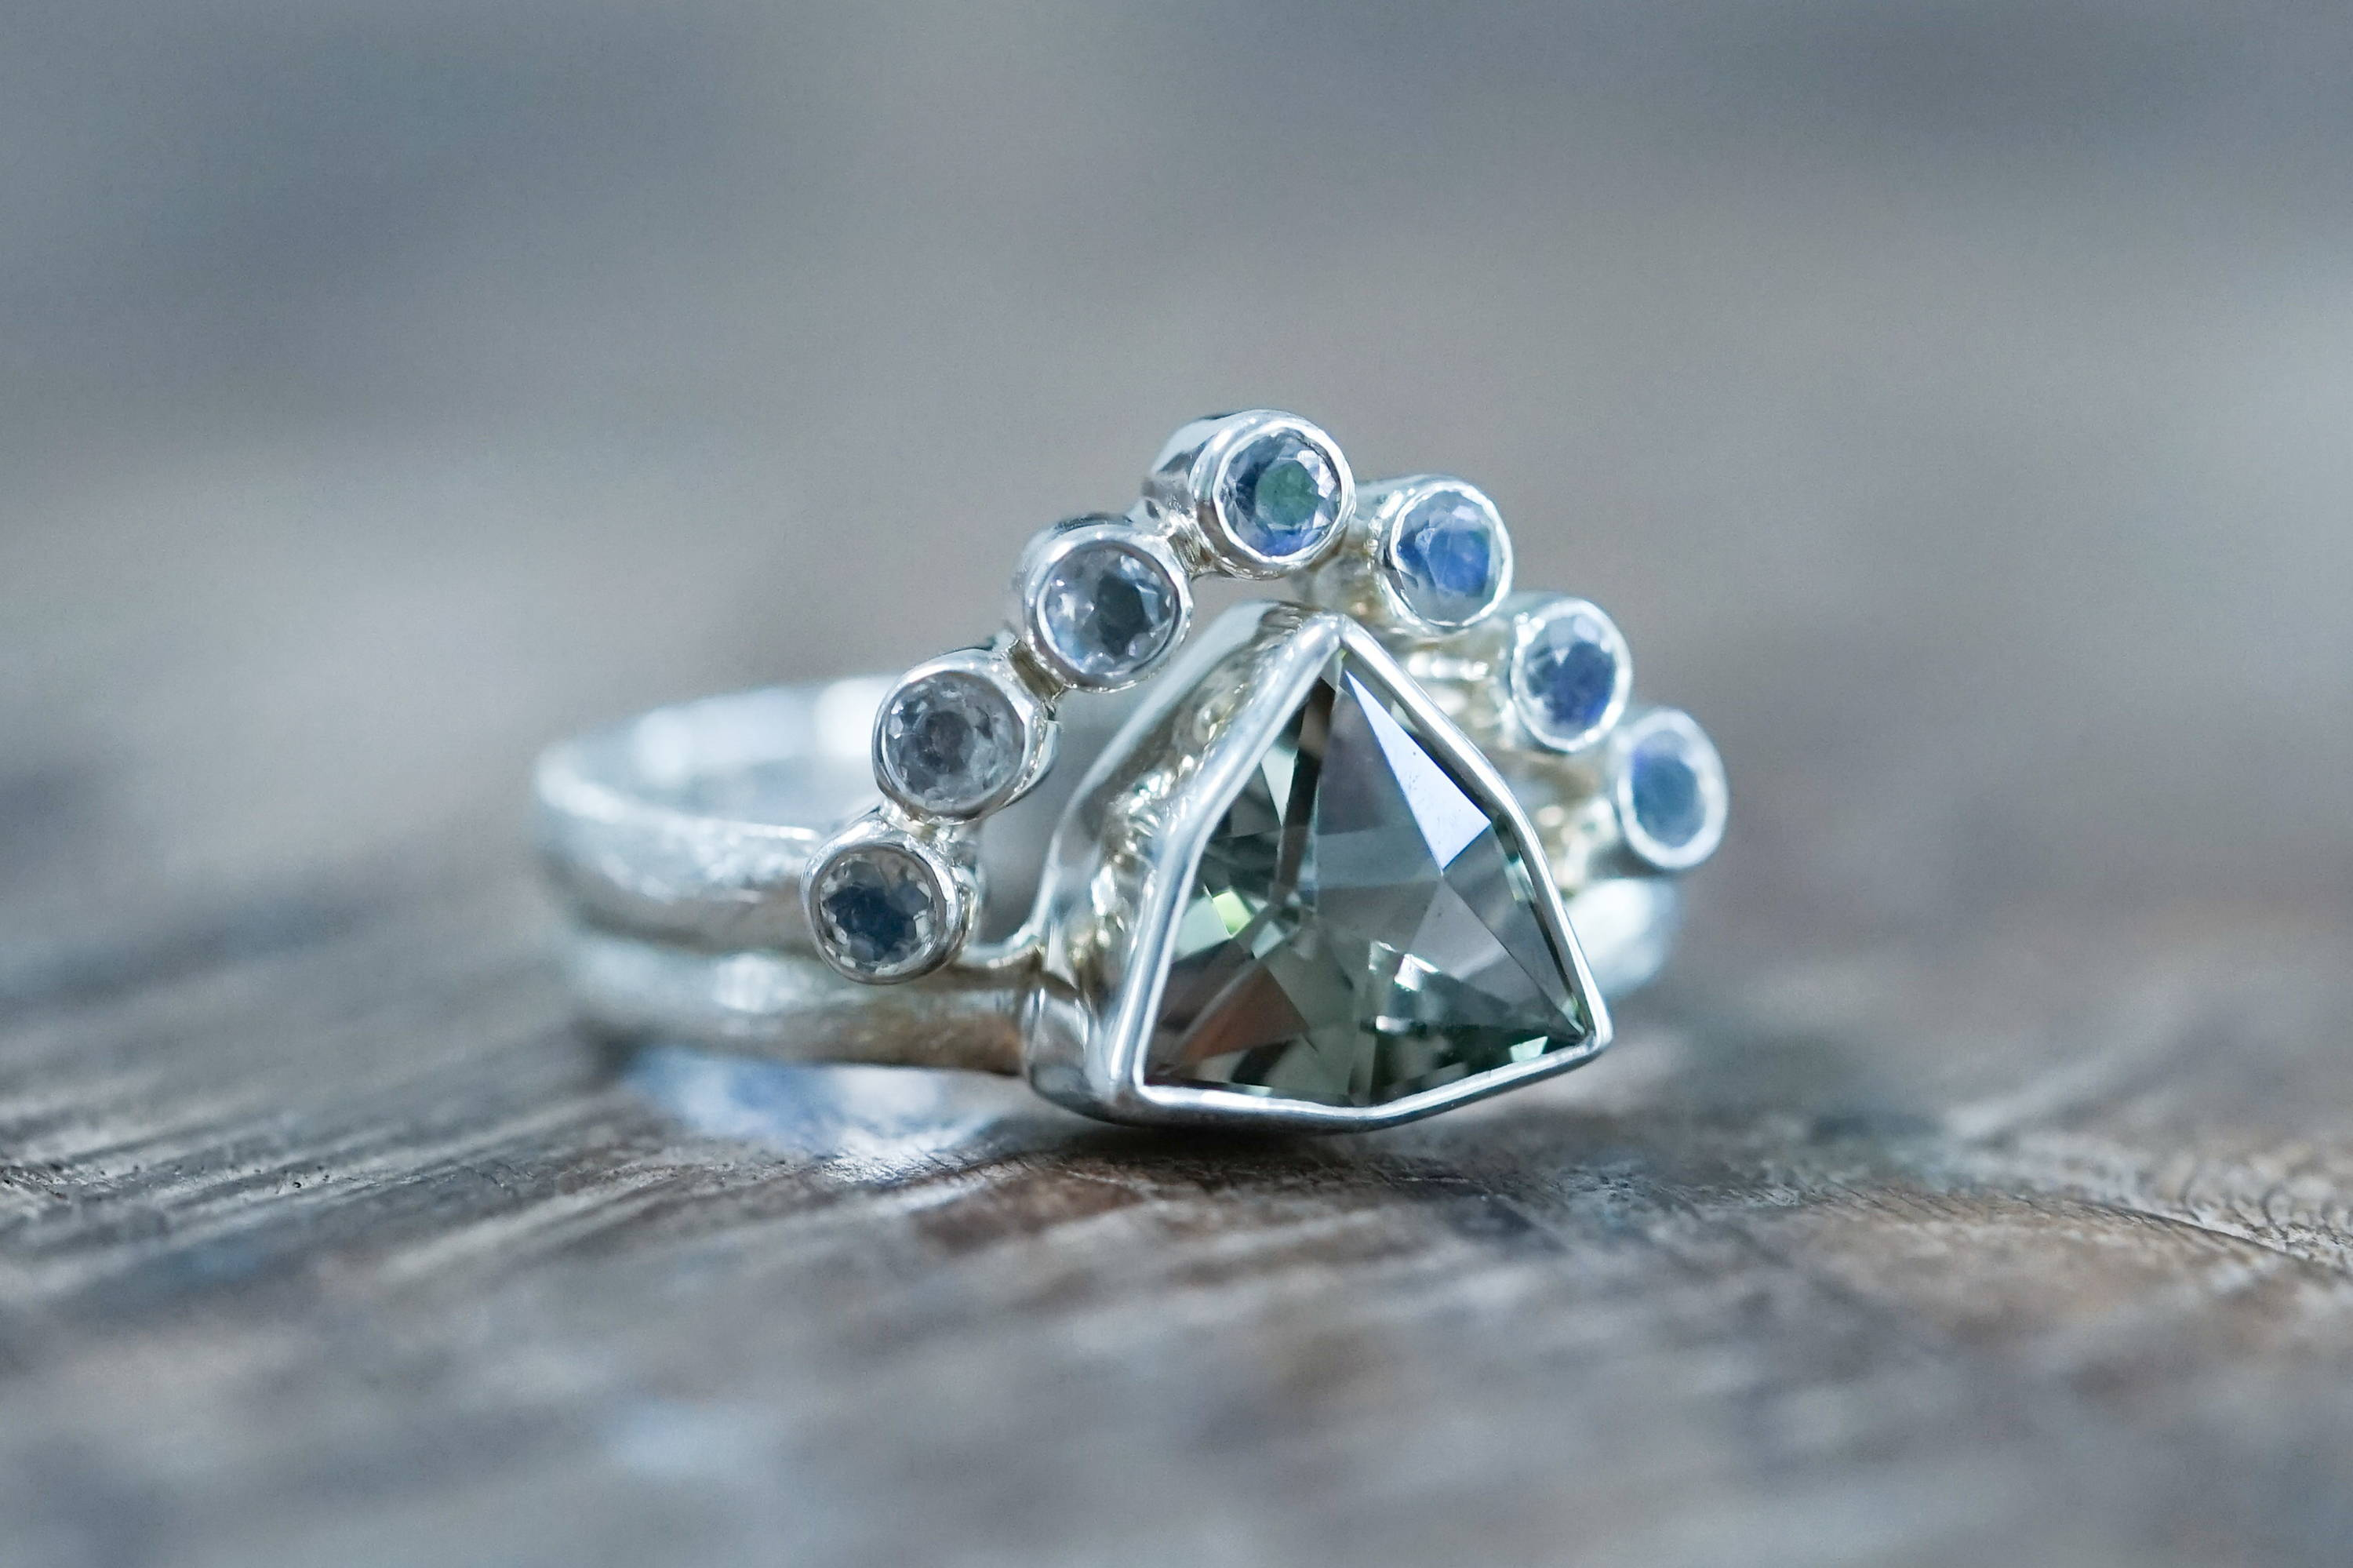 Custome recycled silver birthstone ring